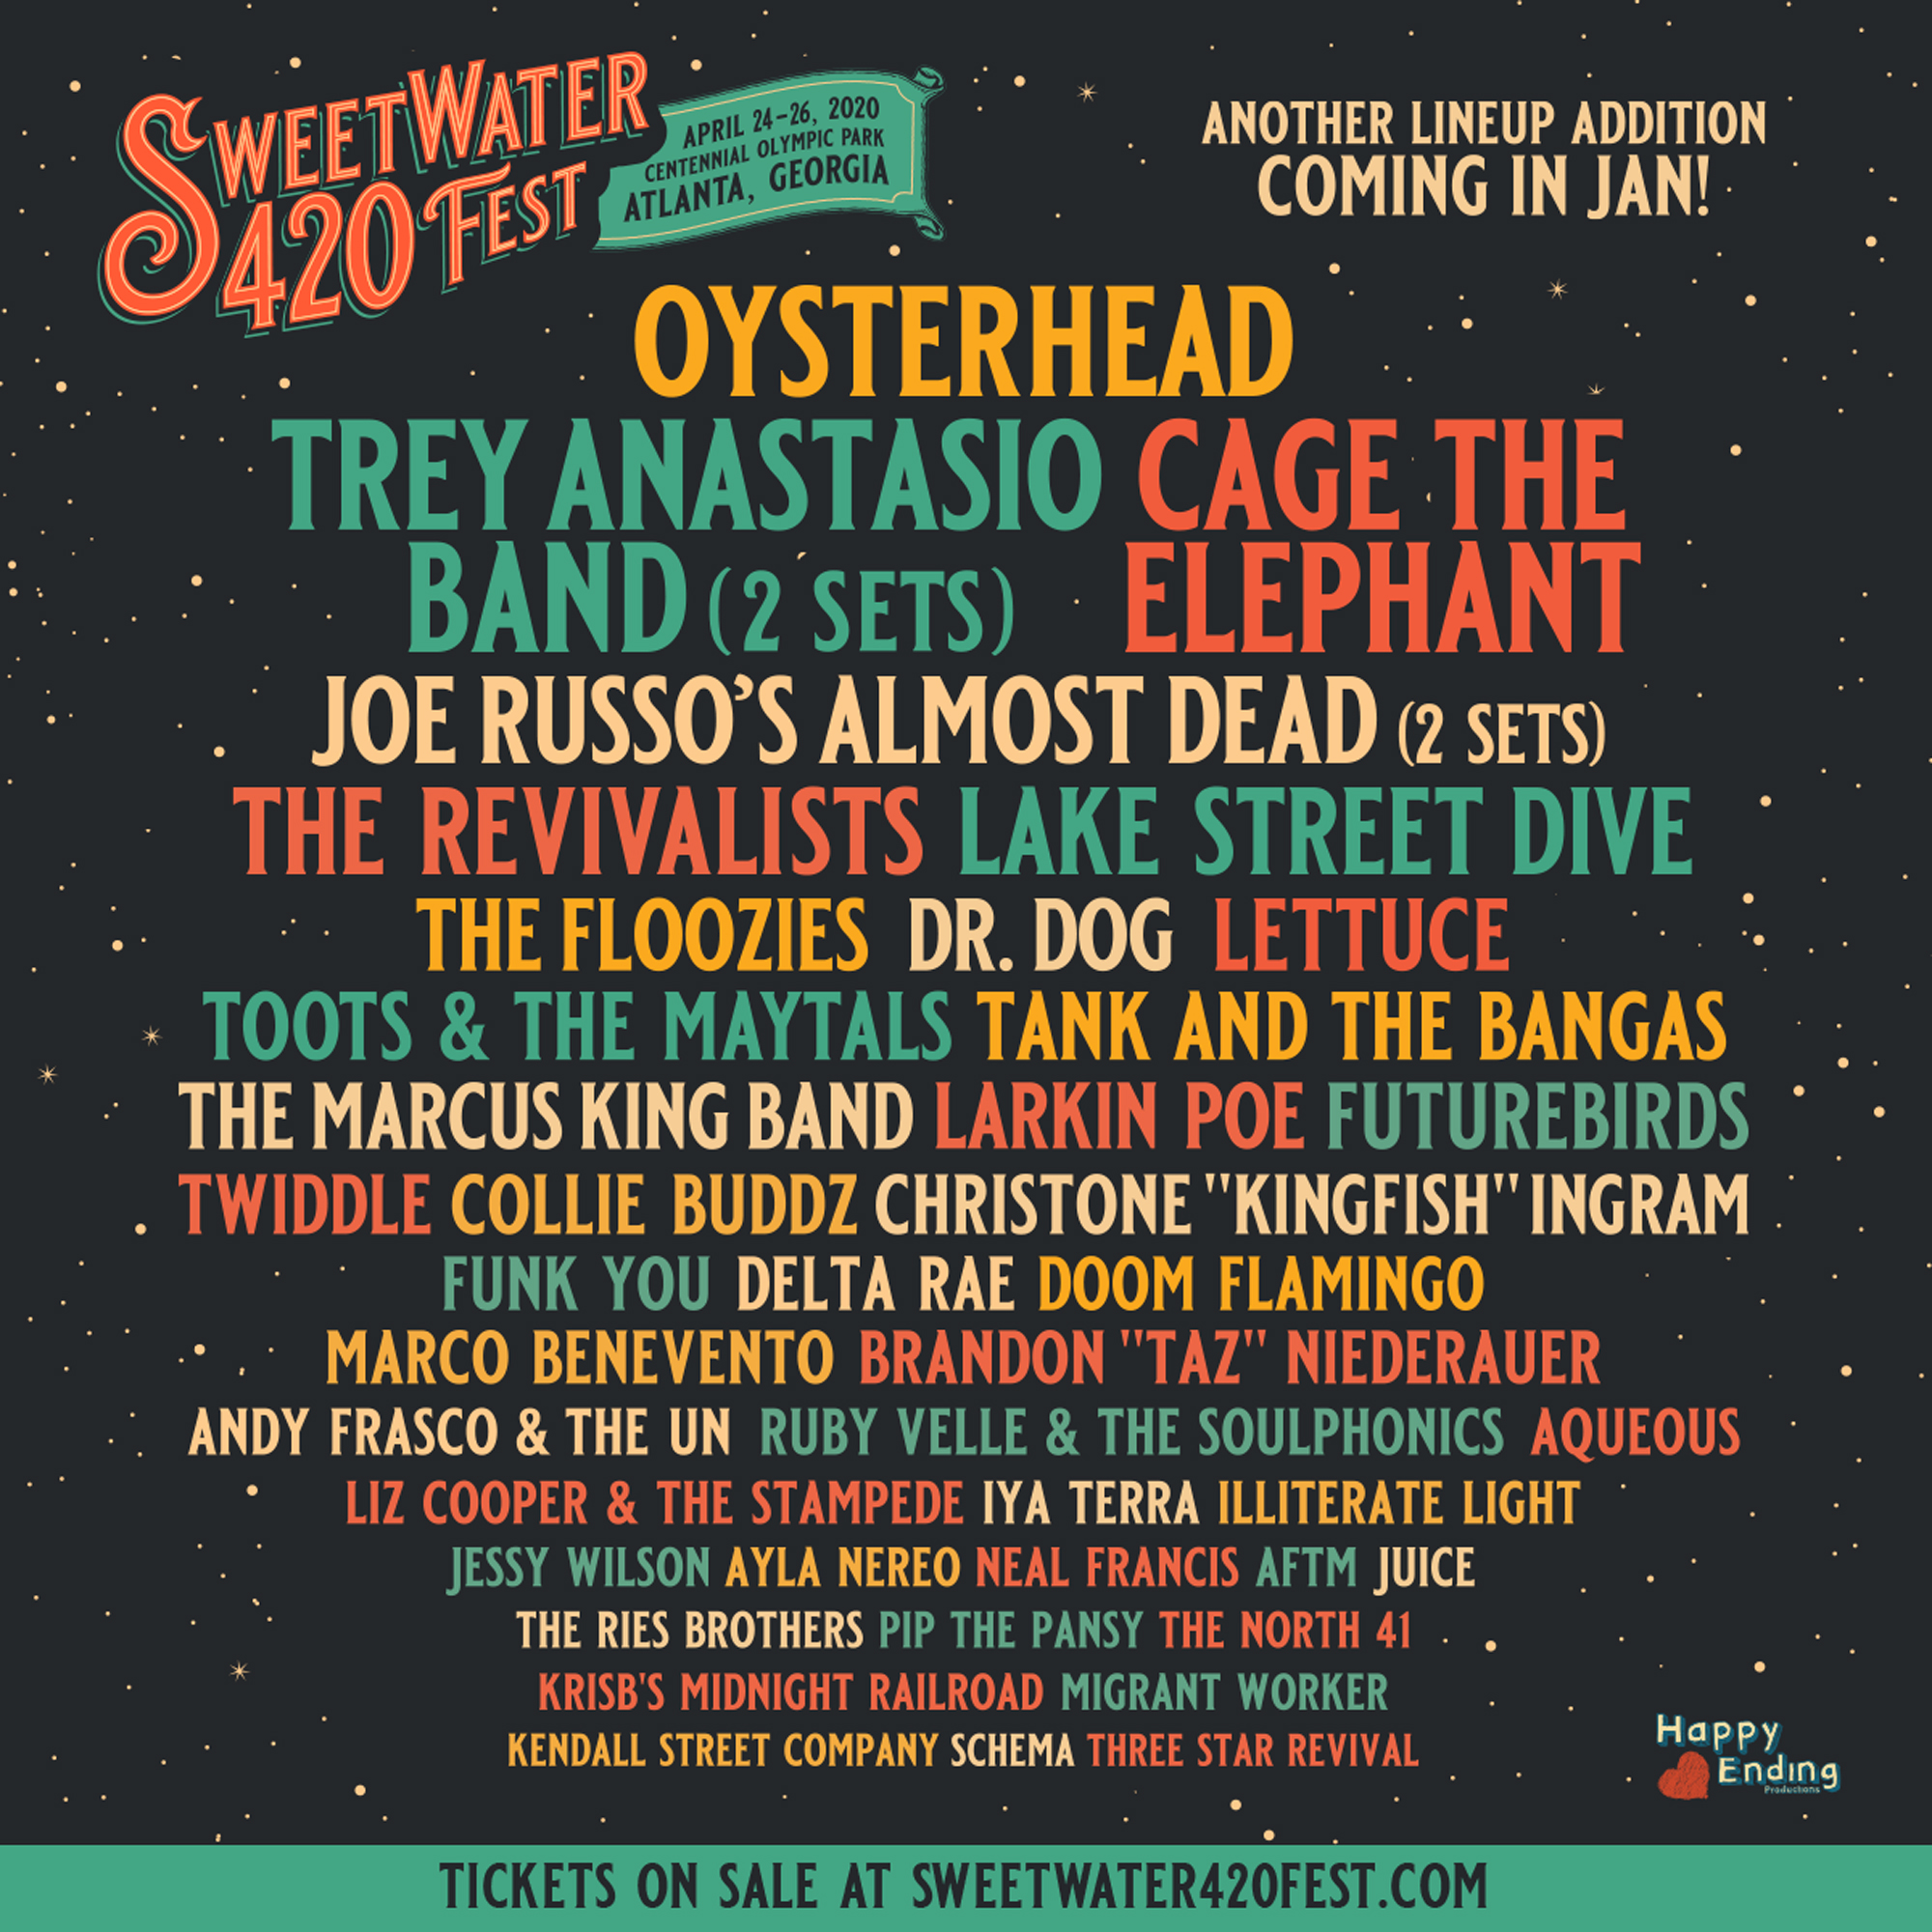 SweetWater 420 Festival Lineup 2020 Additions